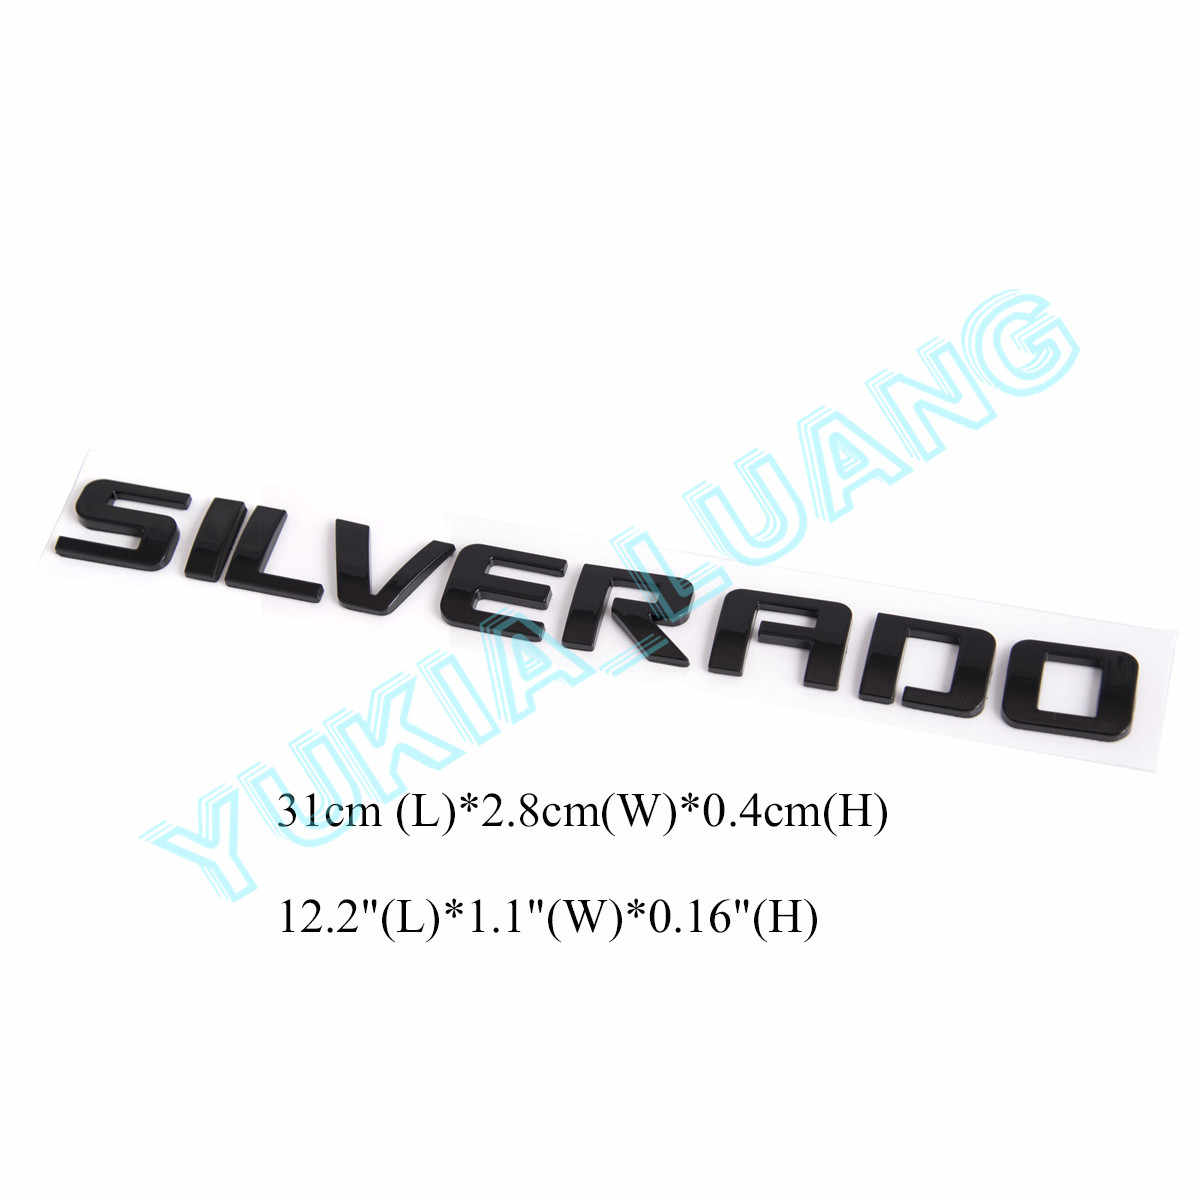 Chrome 1Pc Grille HIGH Country Car Emblem Replacement for Badges Door Tailgate 3D Nameplate for Chevrolet Silverado 1500 2500HD Sierra 3500HD